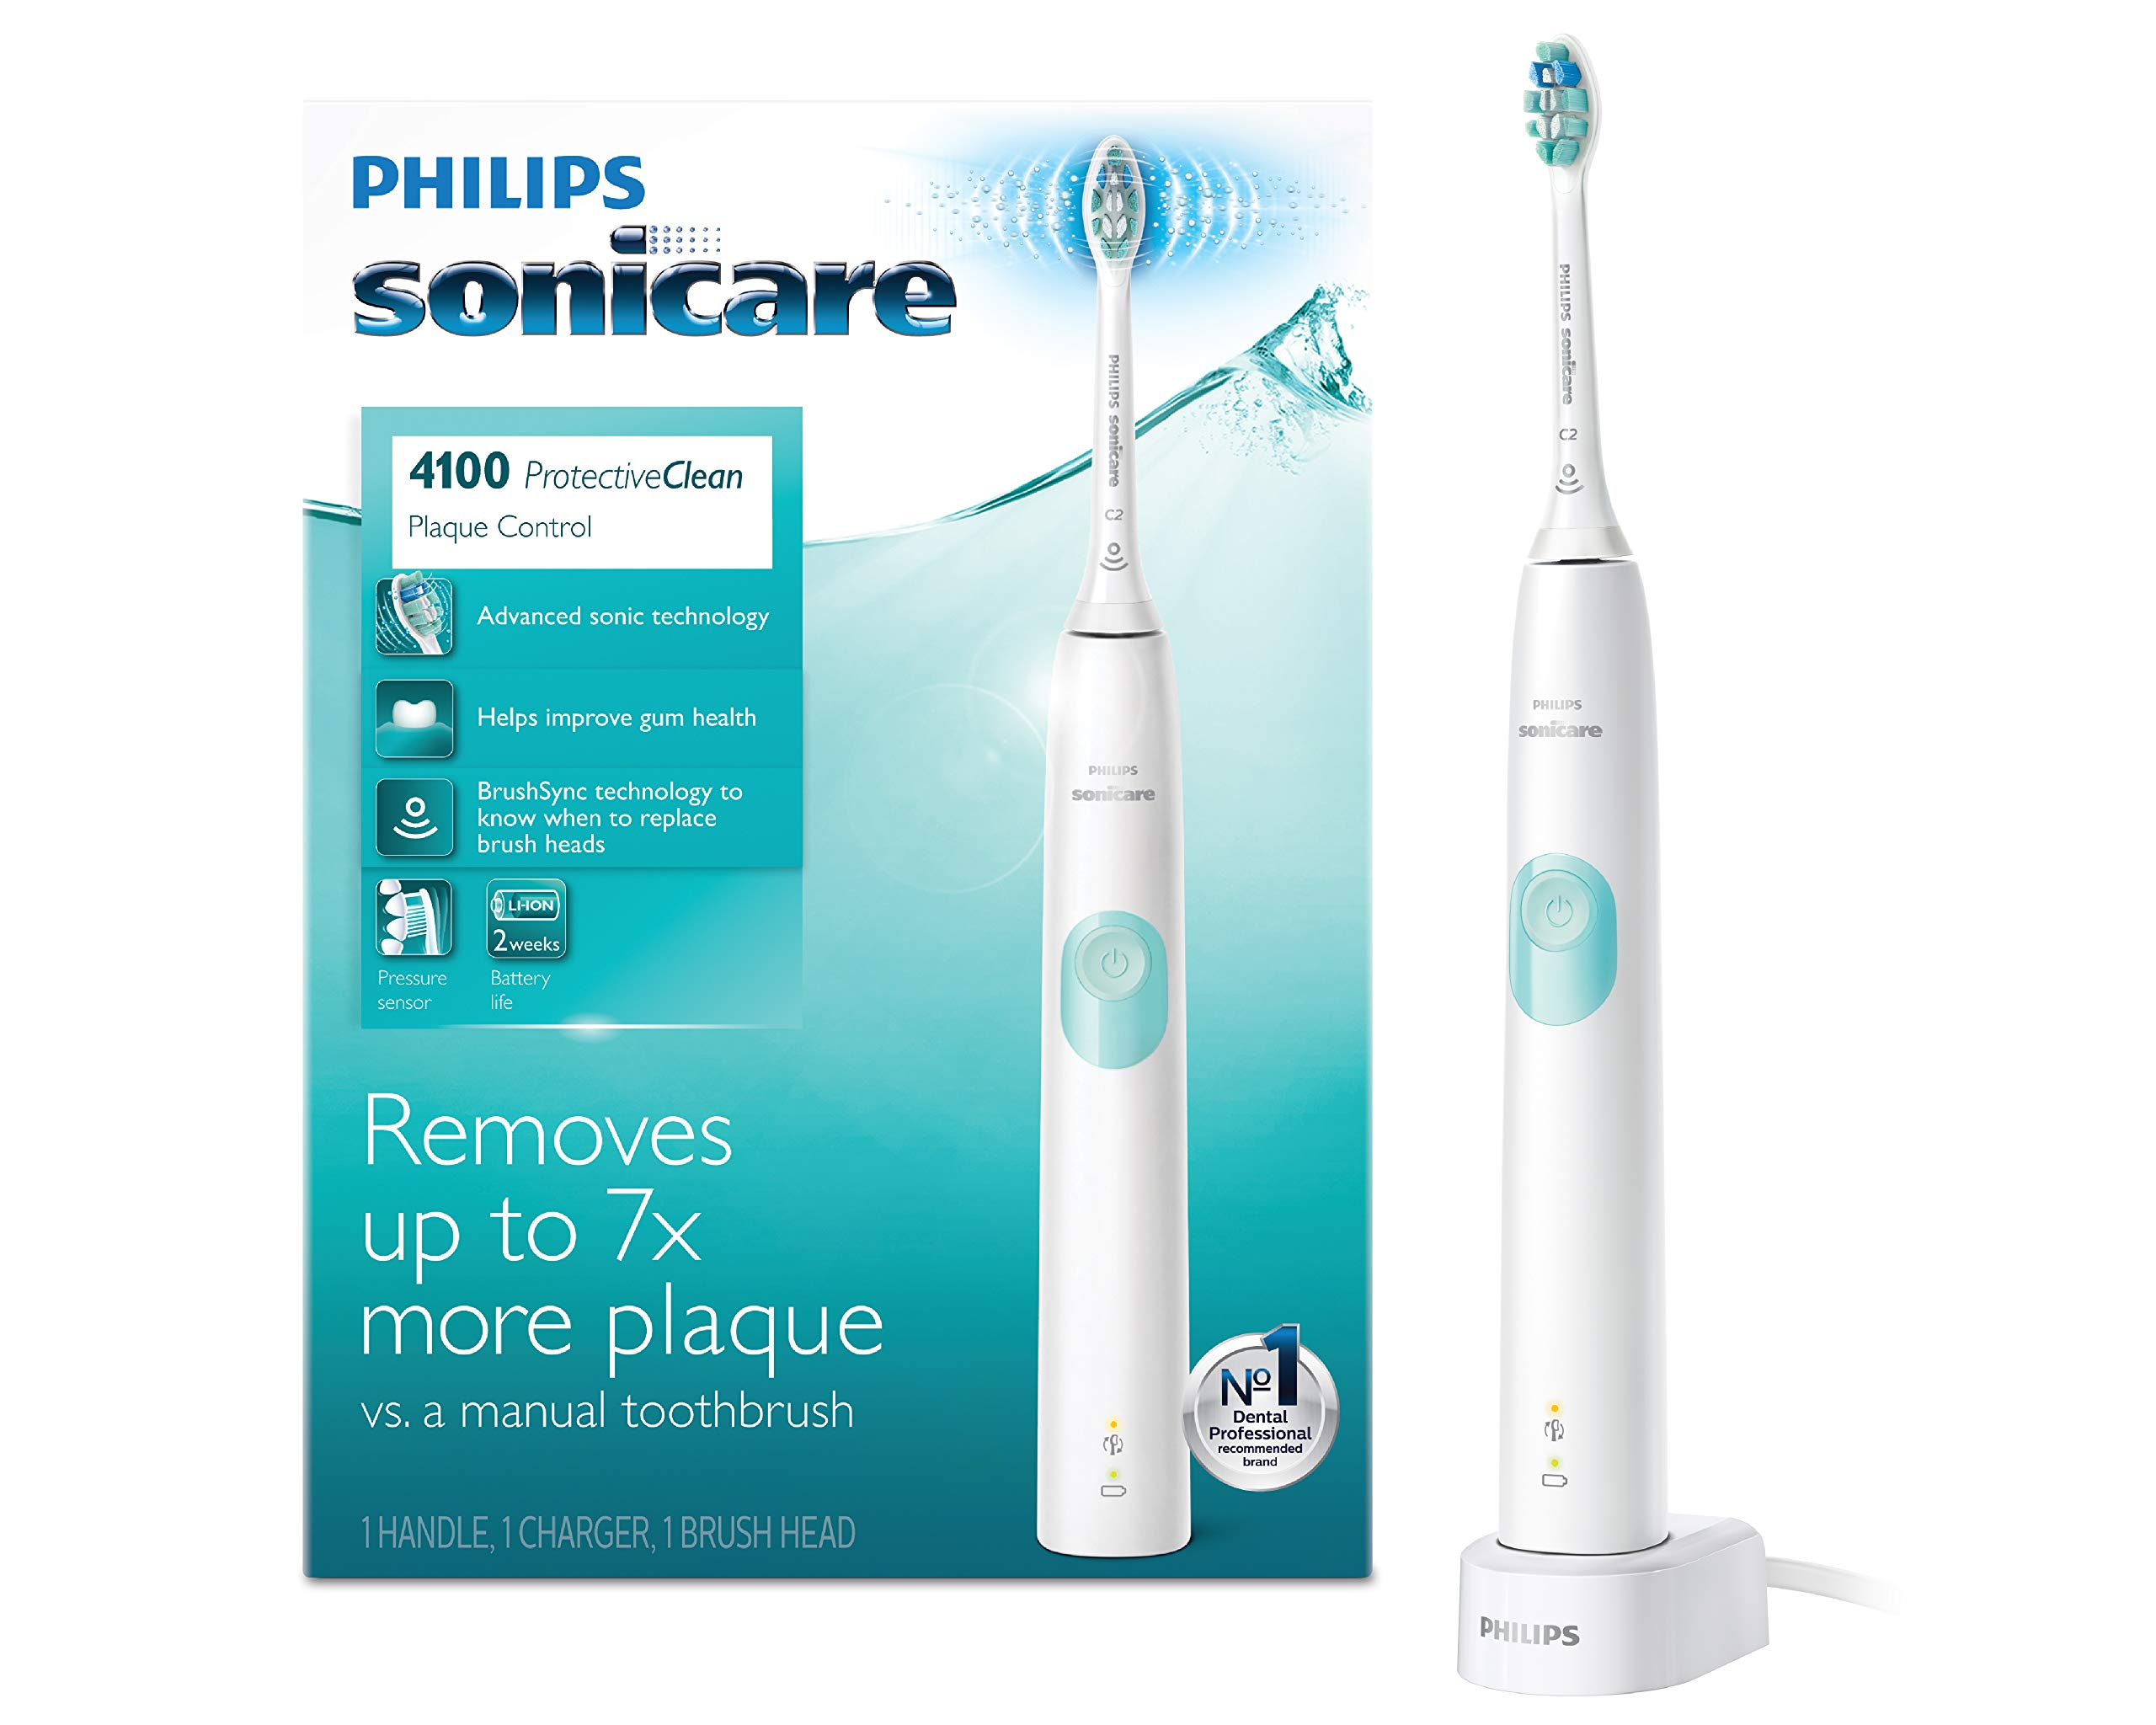 Philips Sonicare ProtectiveClean 4100 Electric Rechargeable Toothbrush, Plaque Control, White by Philips Sonicare